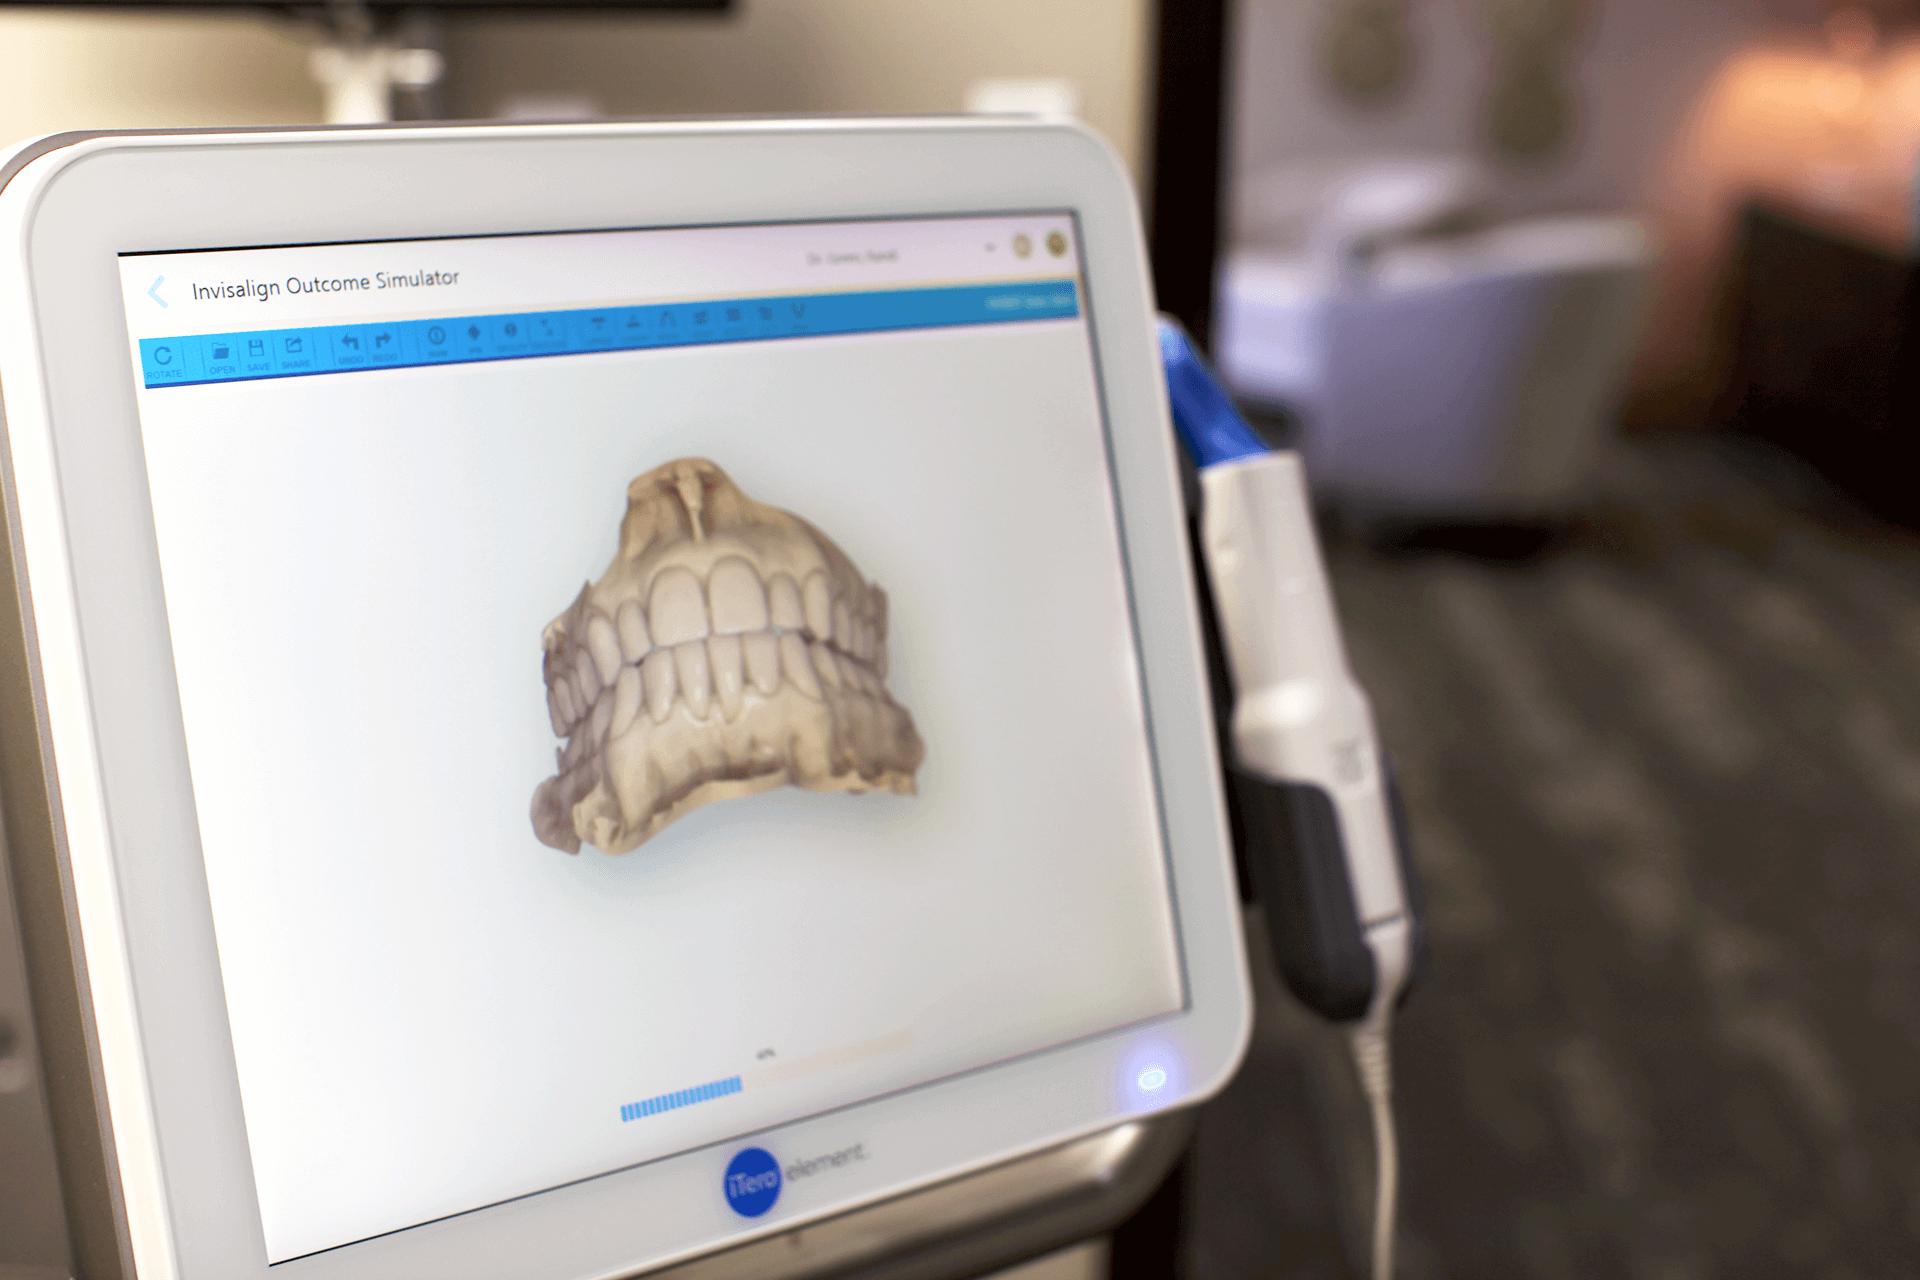 Invisalign outcome simulation available at Springfield Smile Doctor with iTero. Ask Dr. Green about your Invisalign animation.